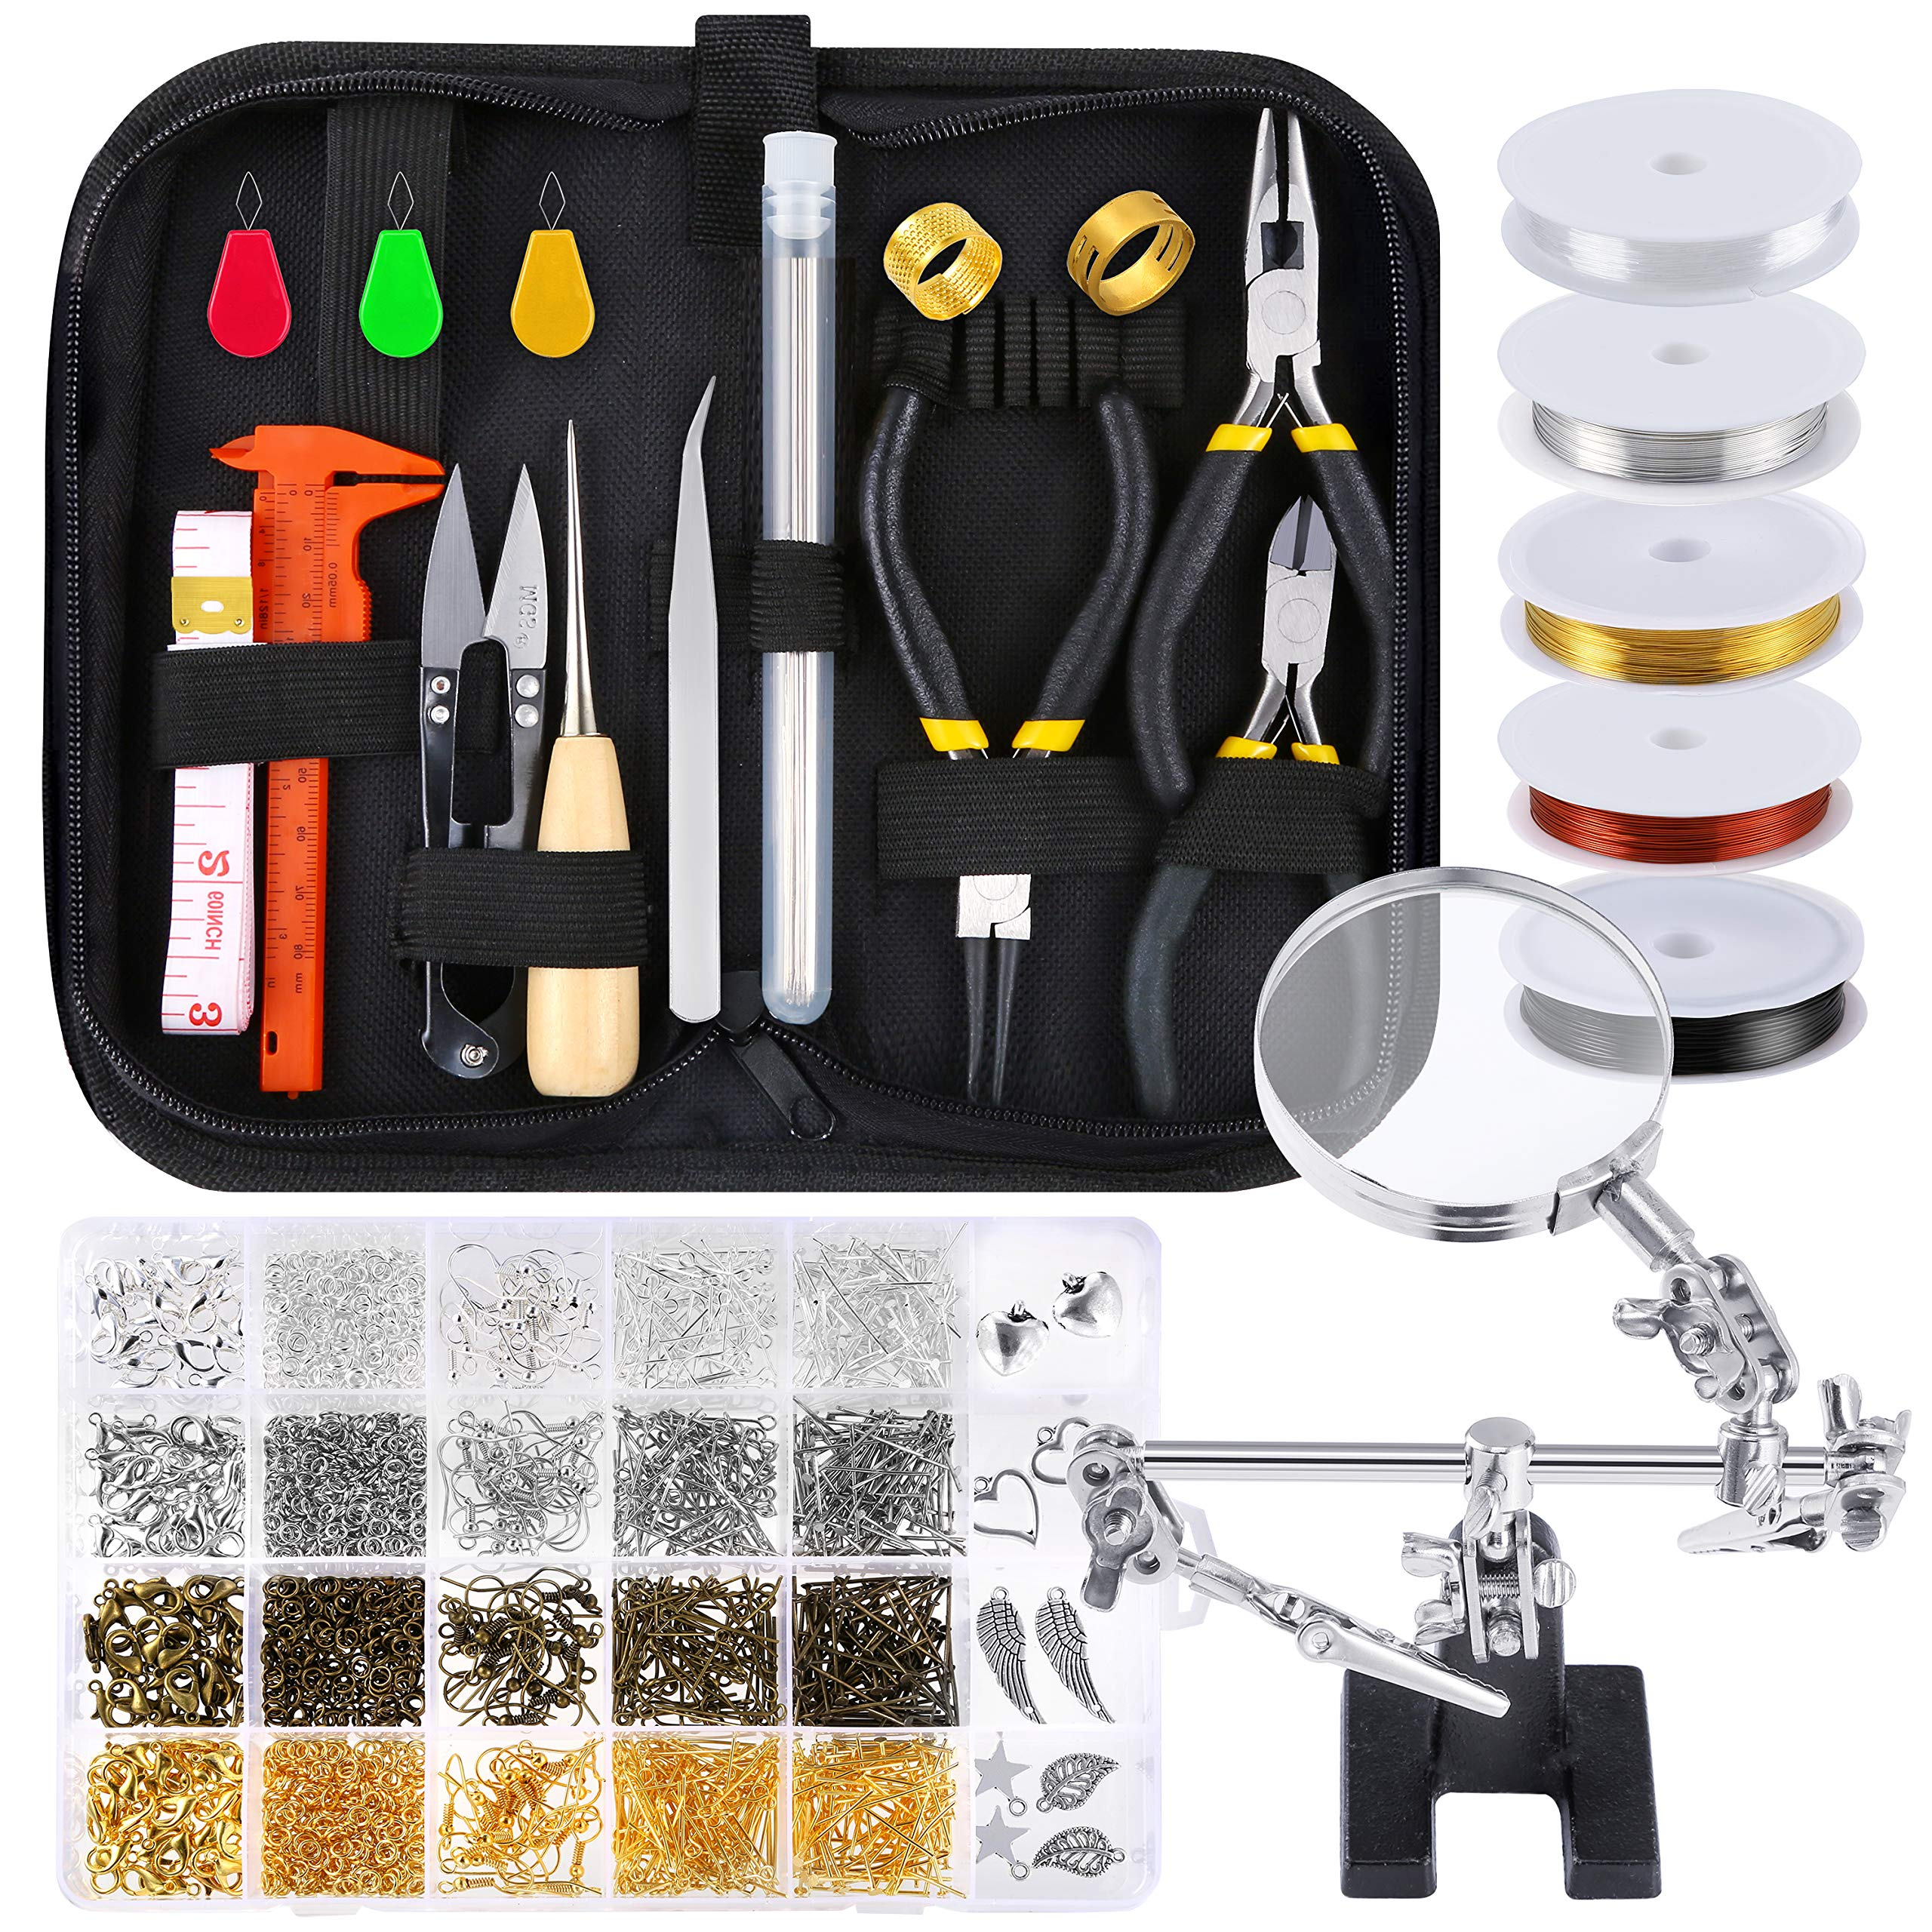 PP OPOUNT Jewelry Making Supplies Wire Wrapping Kit with Jewelry Beading Tools, Jewelry Wire, Helping Hands, Jewelry Findings and Pendants for Jewelry Making and Repairing by PP OPOUNT